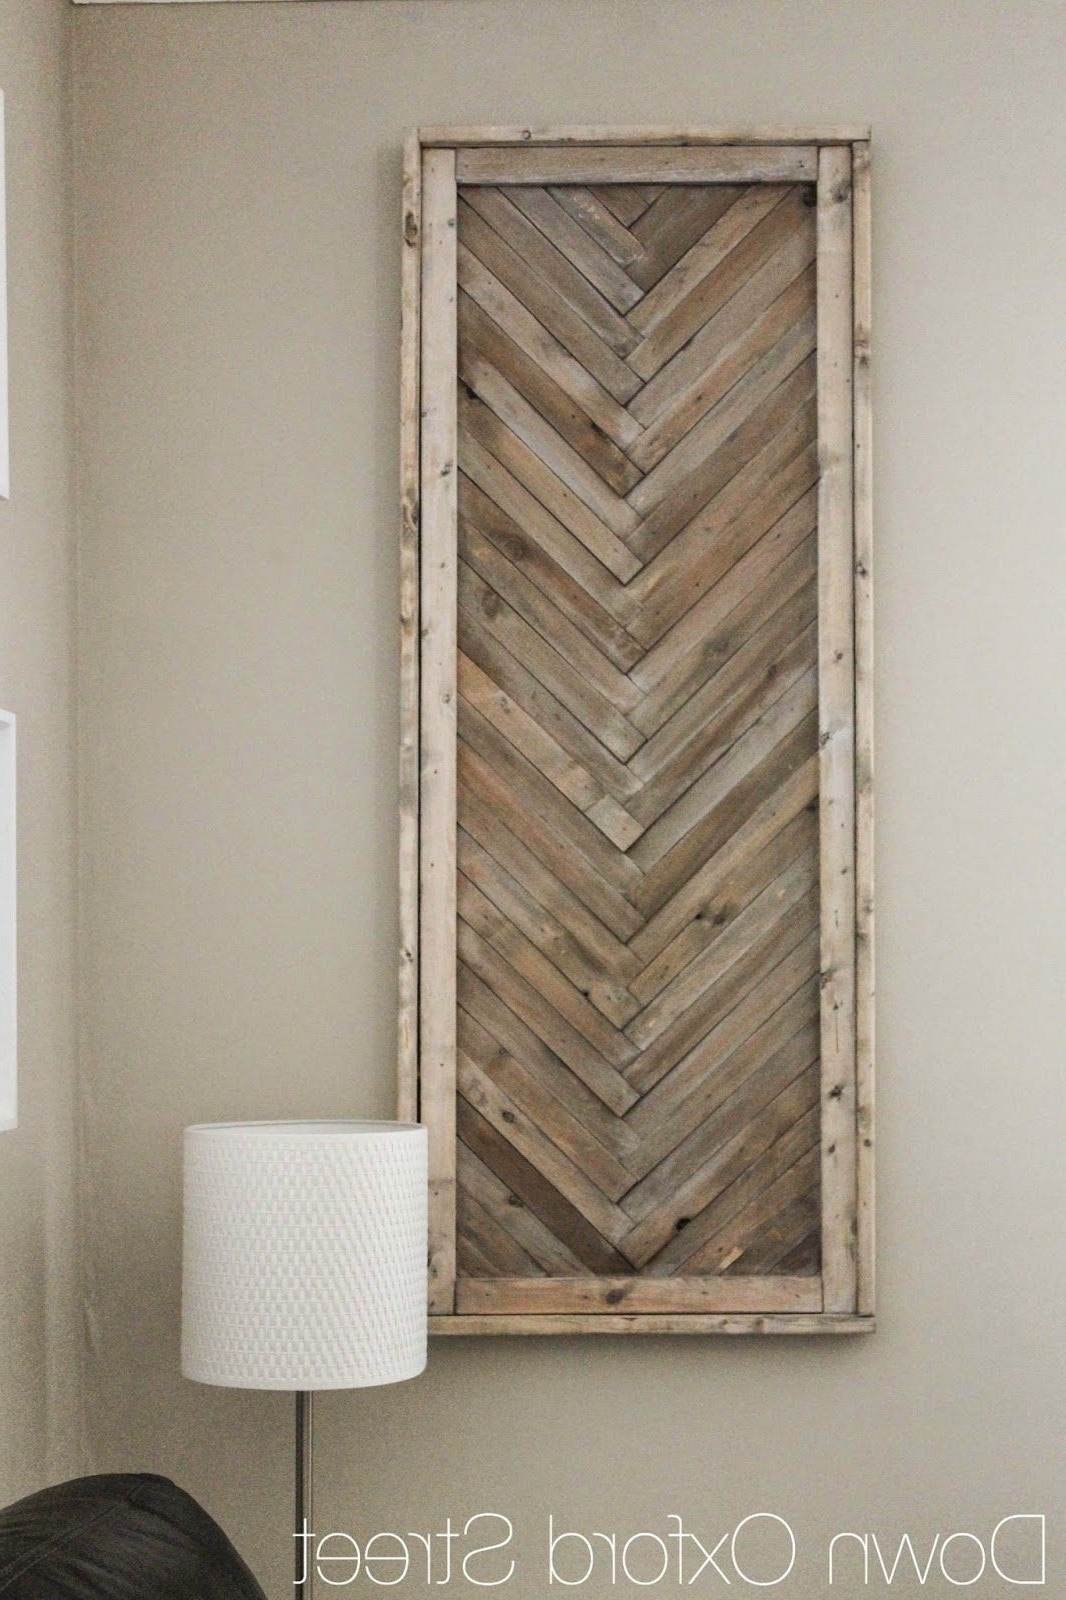 Plank Wall Art In Well Known Like Wood Plank Wall Art Diy – Jumpstartcoffee (View 4 of 20)